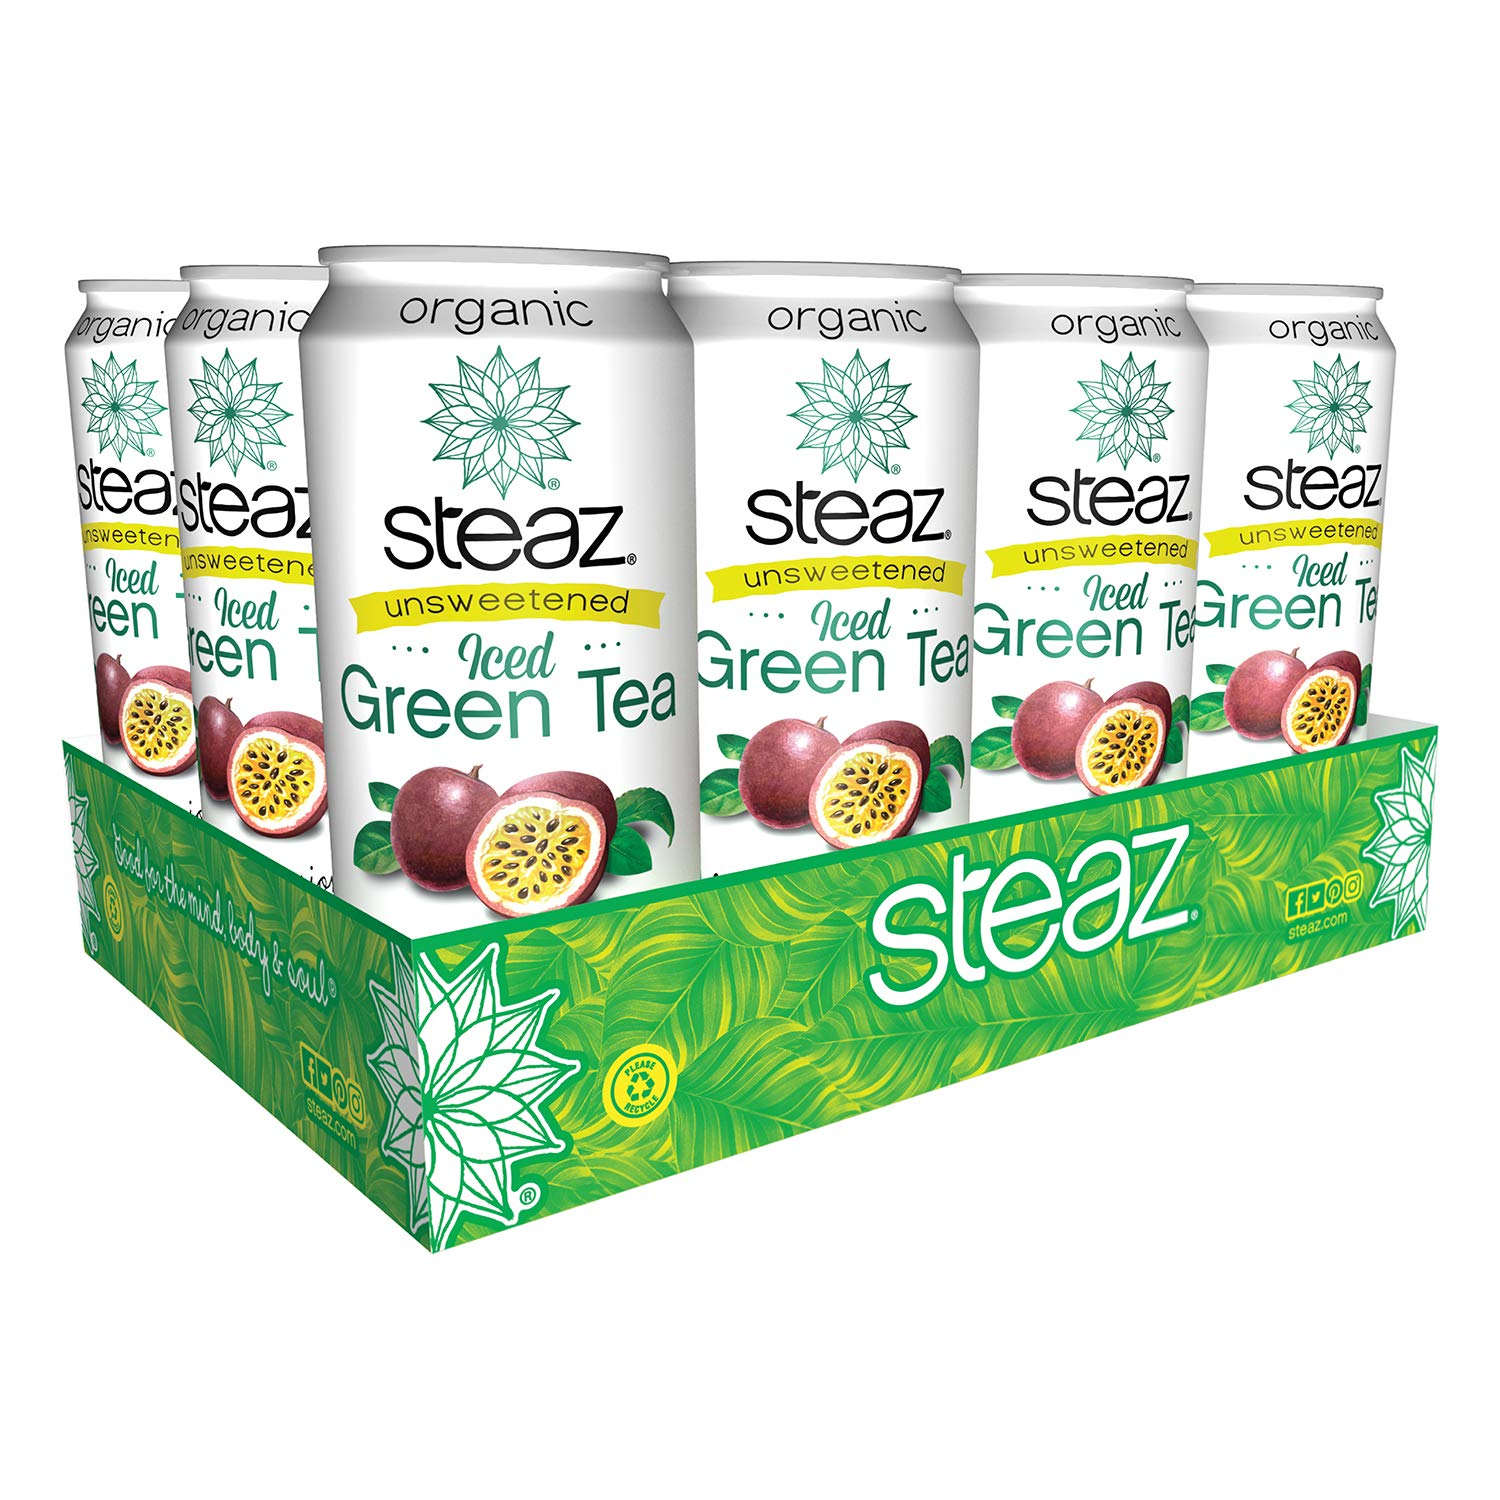 Steaz Unsweetened Iced Green Tea,, 16 OZ (Unsweetened Passionfruit) by Steaz